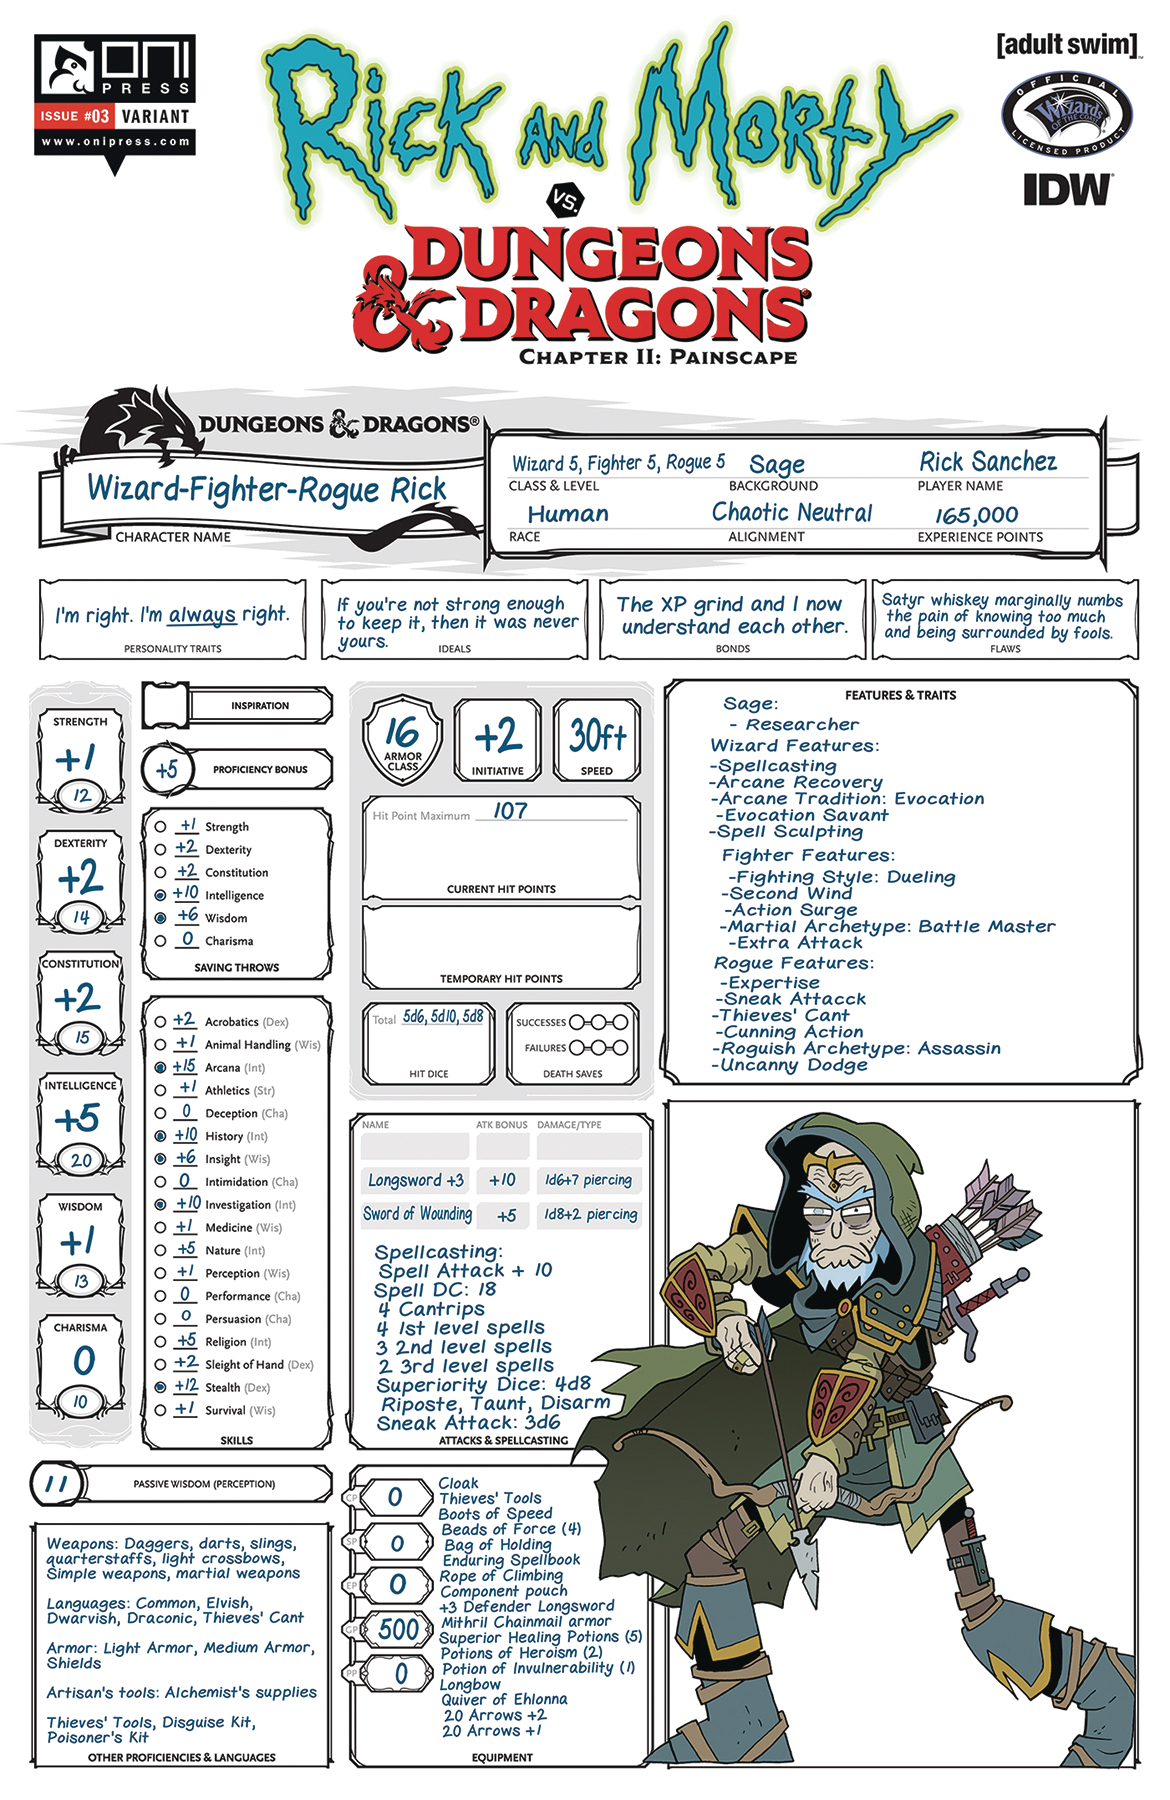 RICK & MORTY VS D&D II PAINSCAPE #3 CVR C CHARACTER SHEET (M